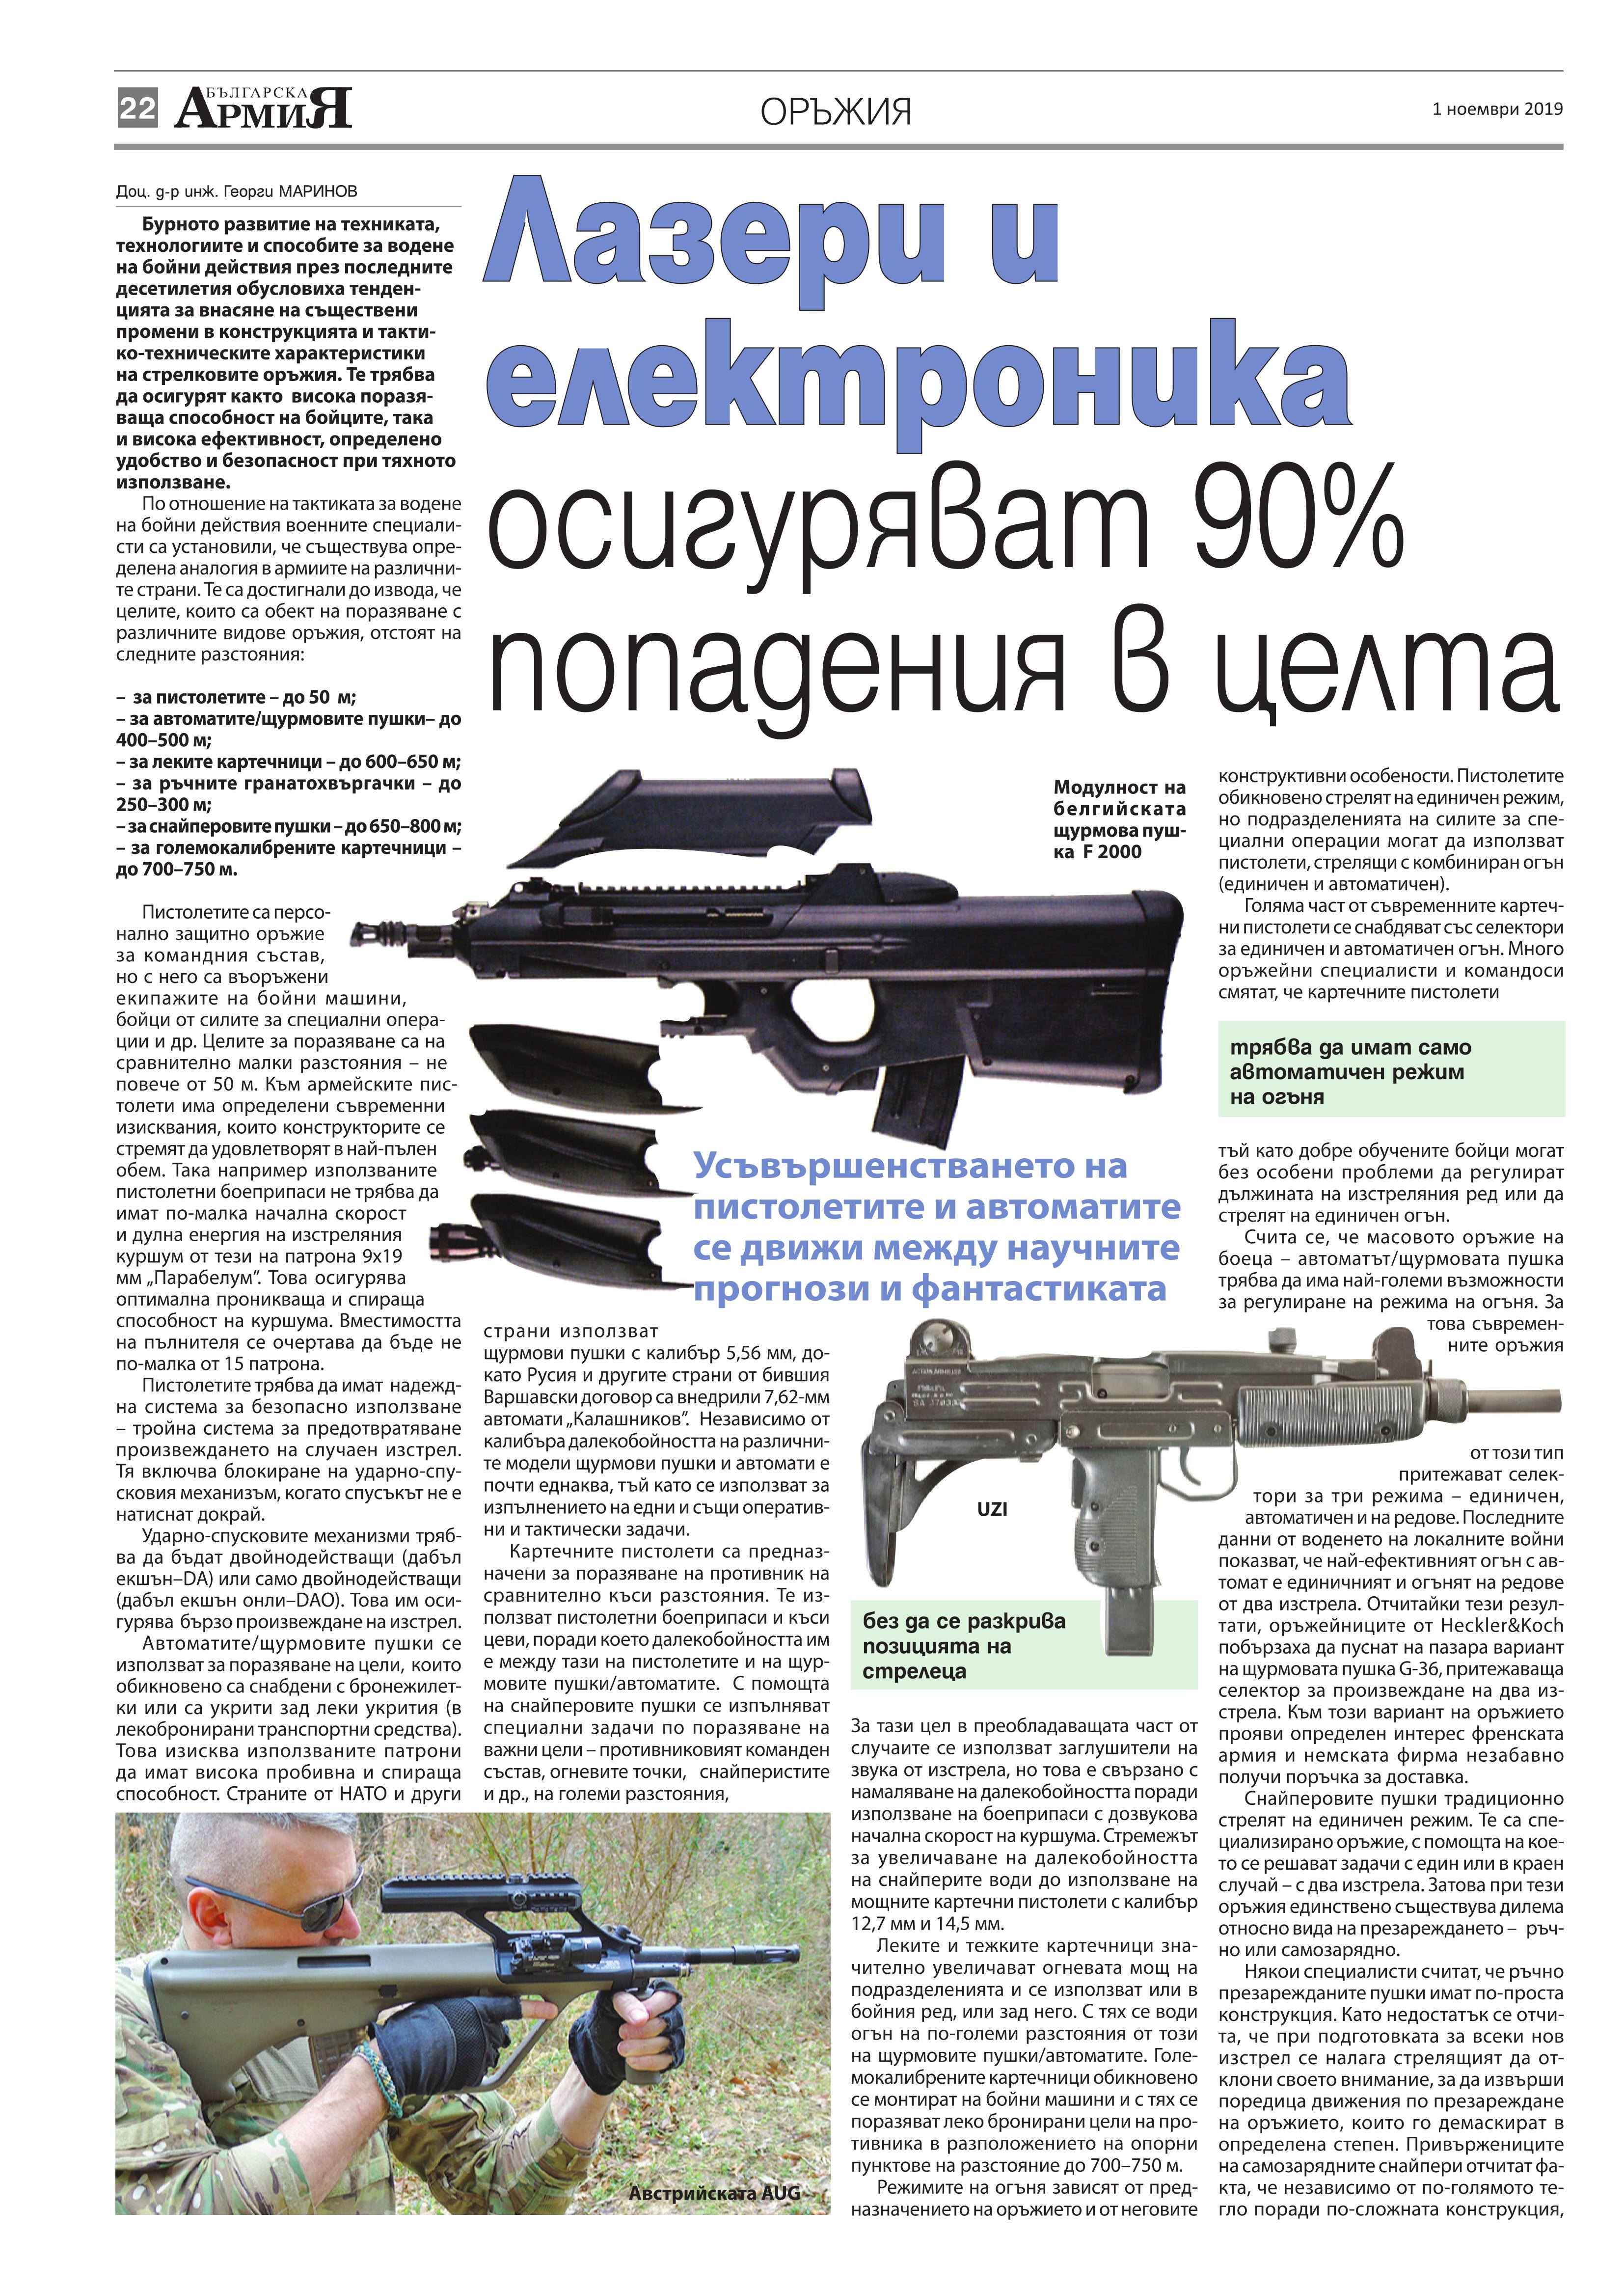 https://www.armymedia.bg/wp-content/uploads/2015/06/22.page1_-114.jpg